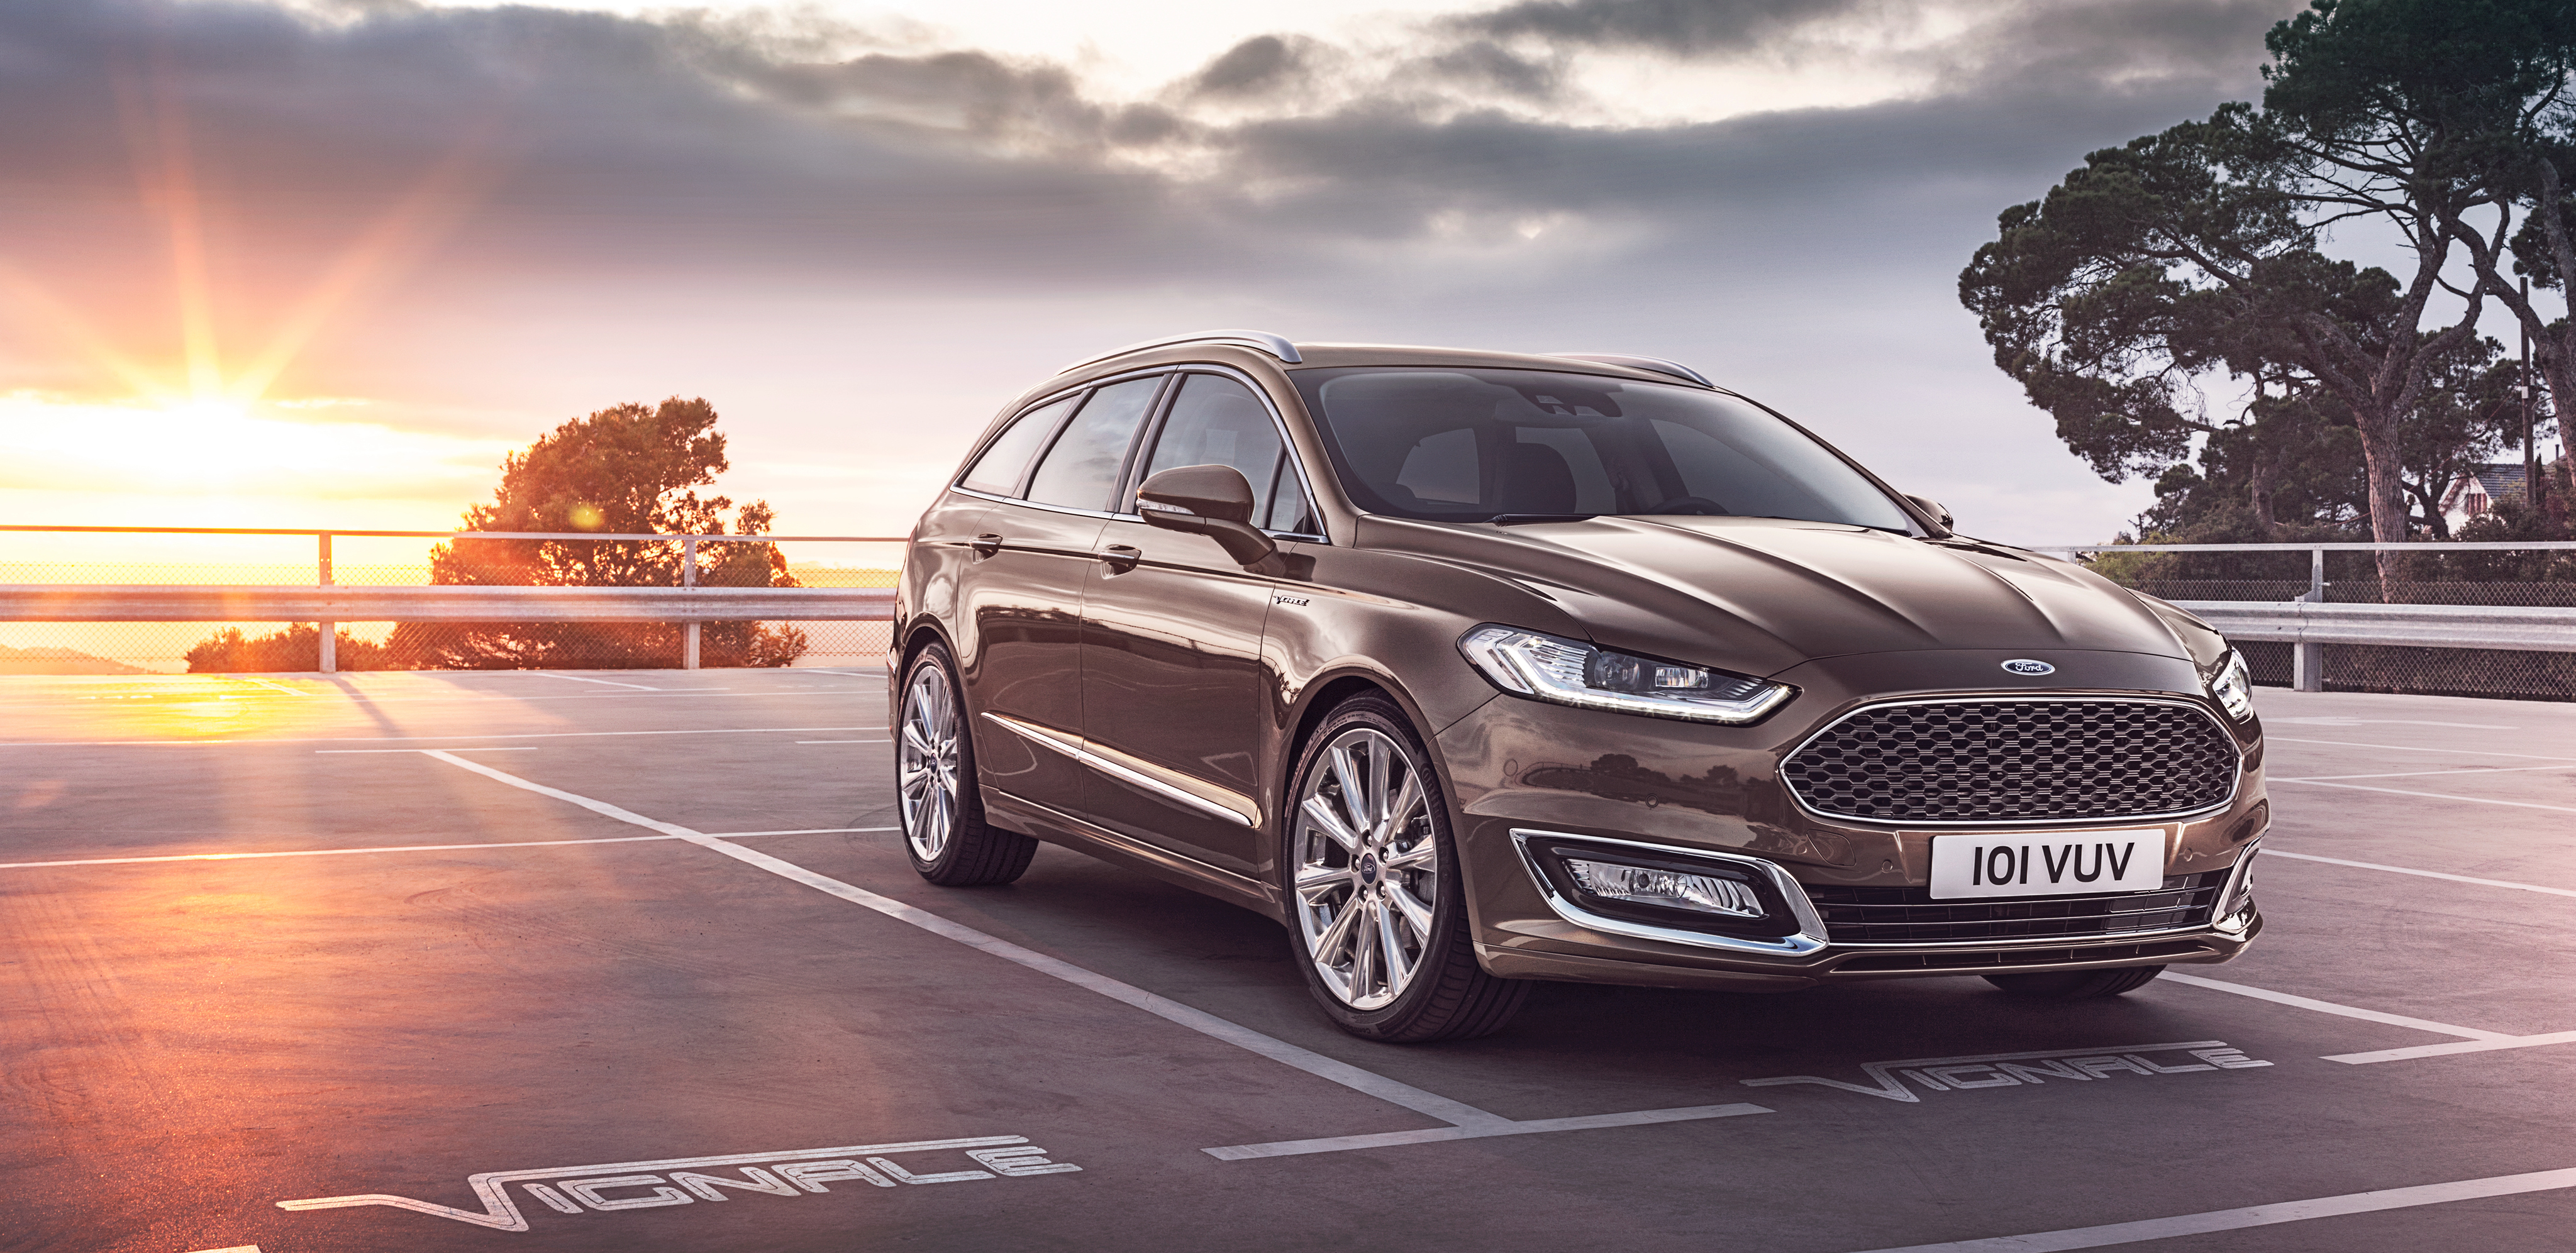 57692 download wallpaper Cars, Ford, Vignale, Mondeo, Turnier, Side View screensavers and pictures for free